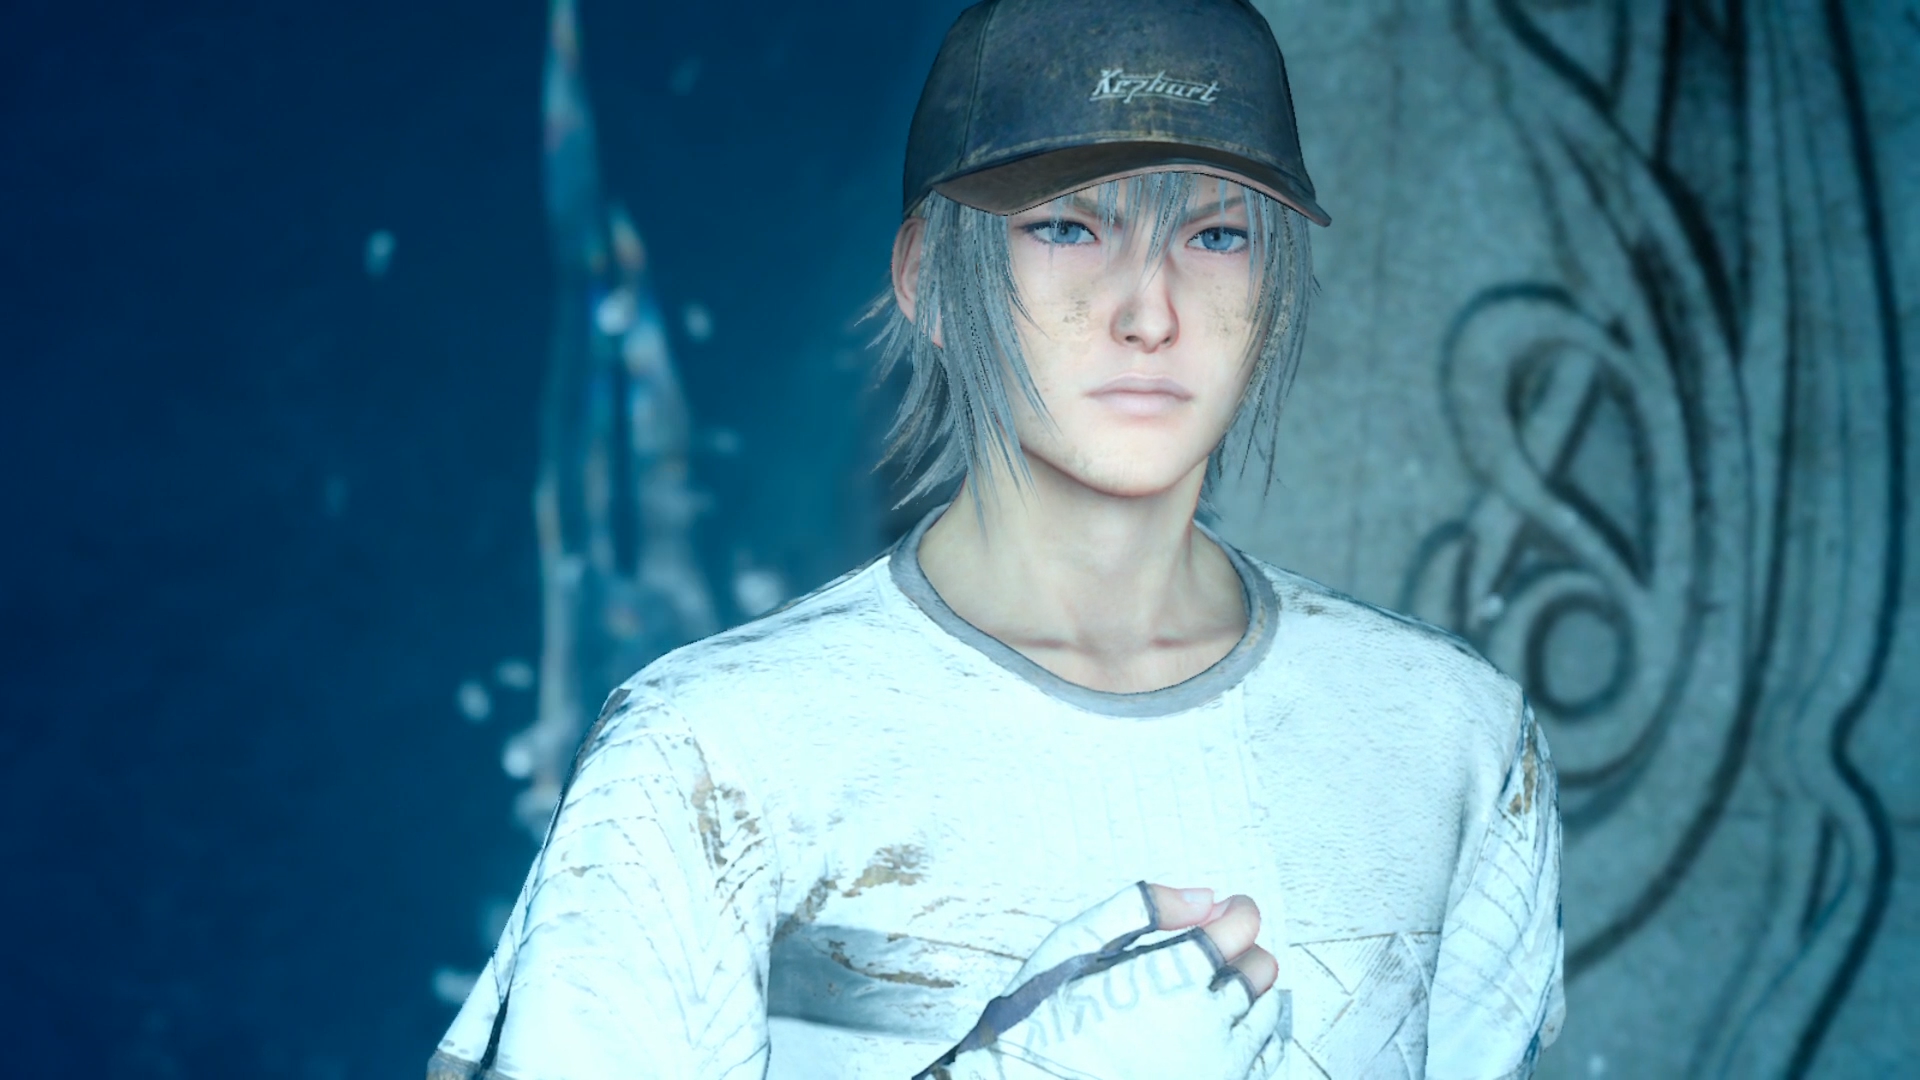 Final Fantasy XV Guide: All outfits in the game and how to get